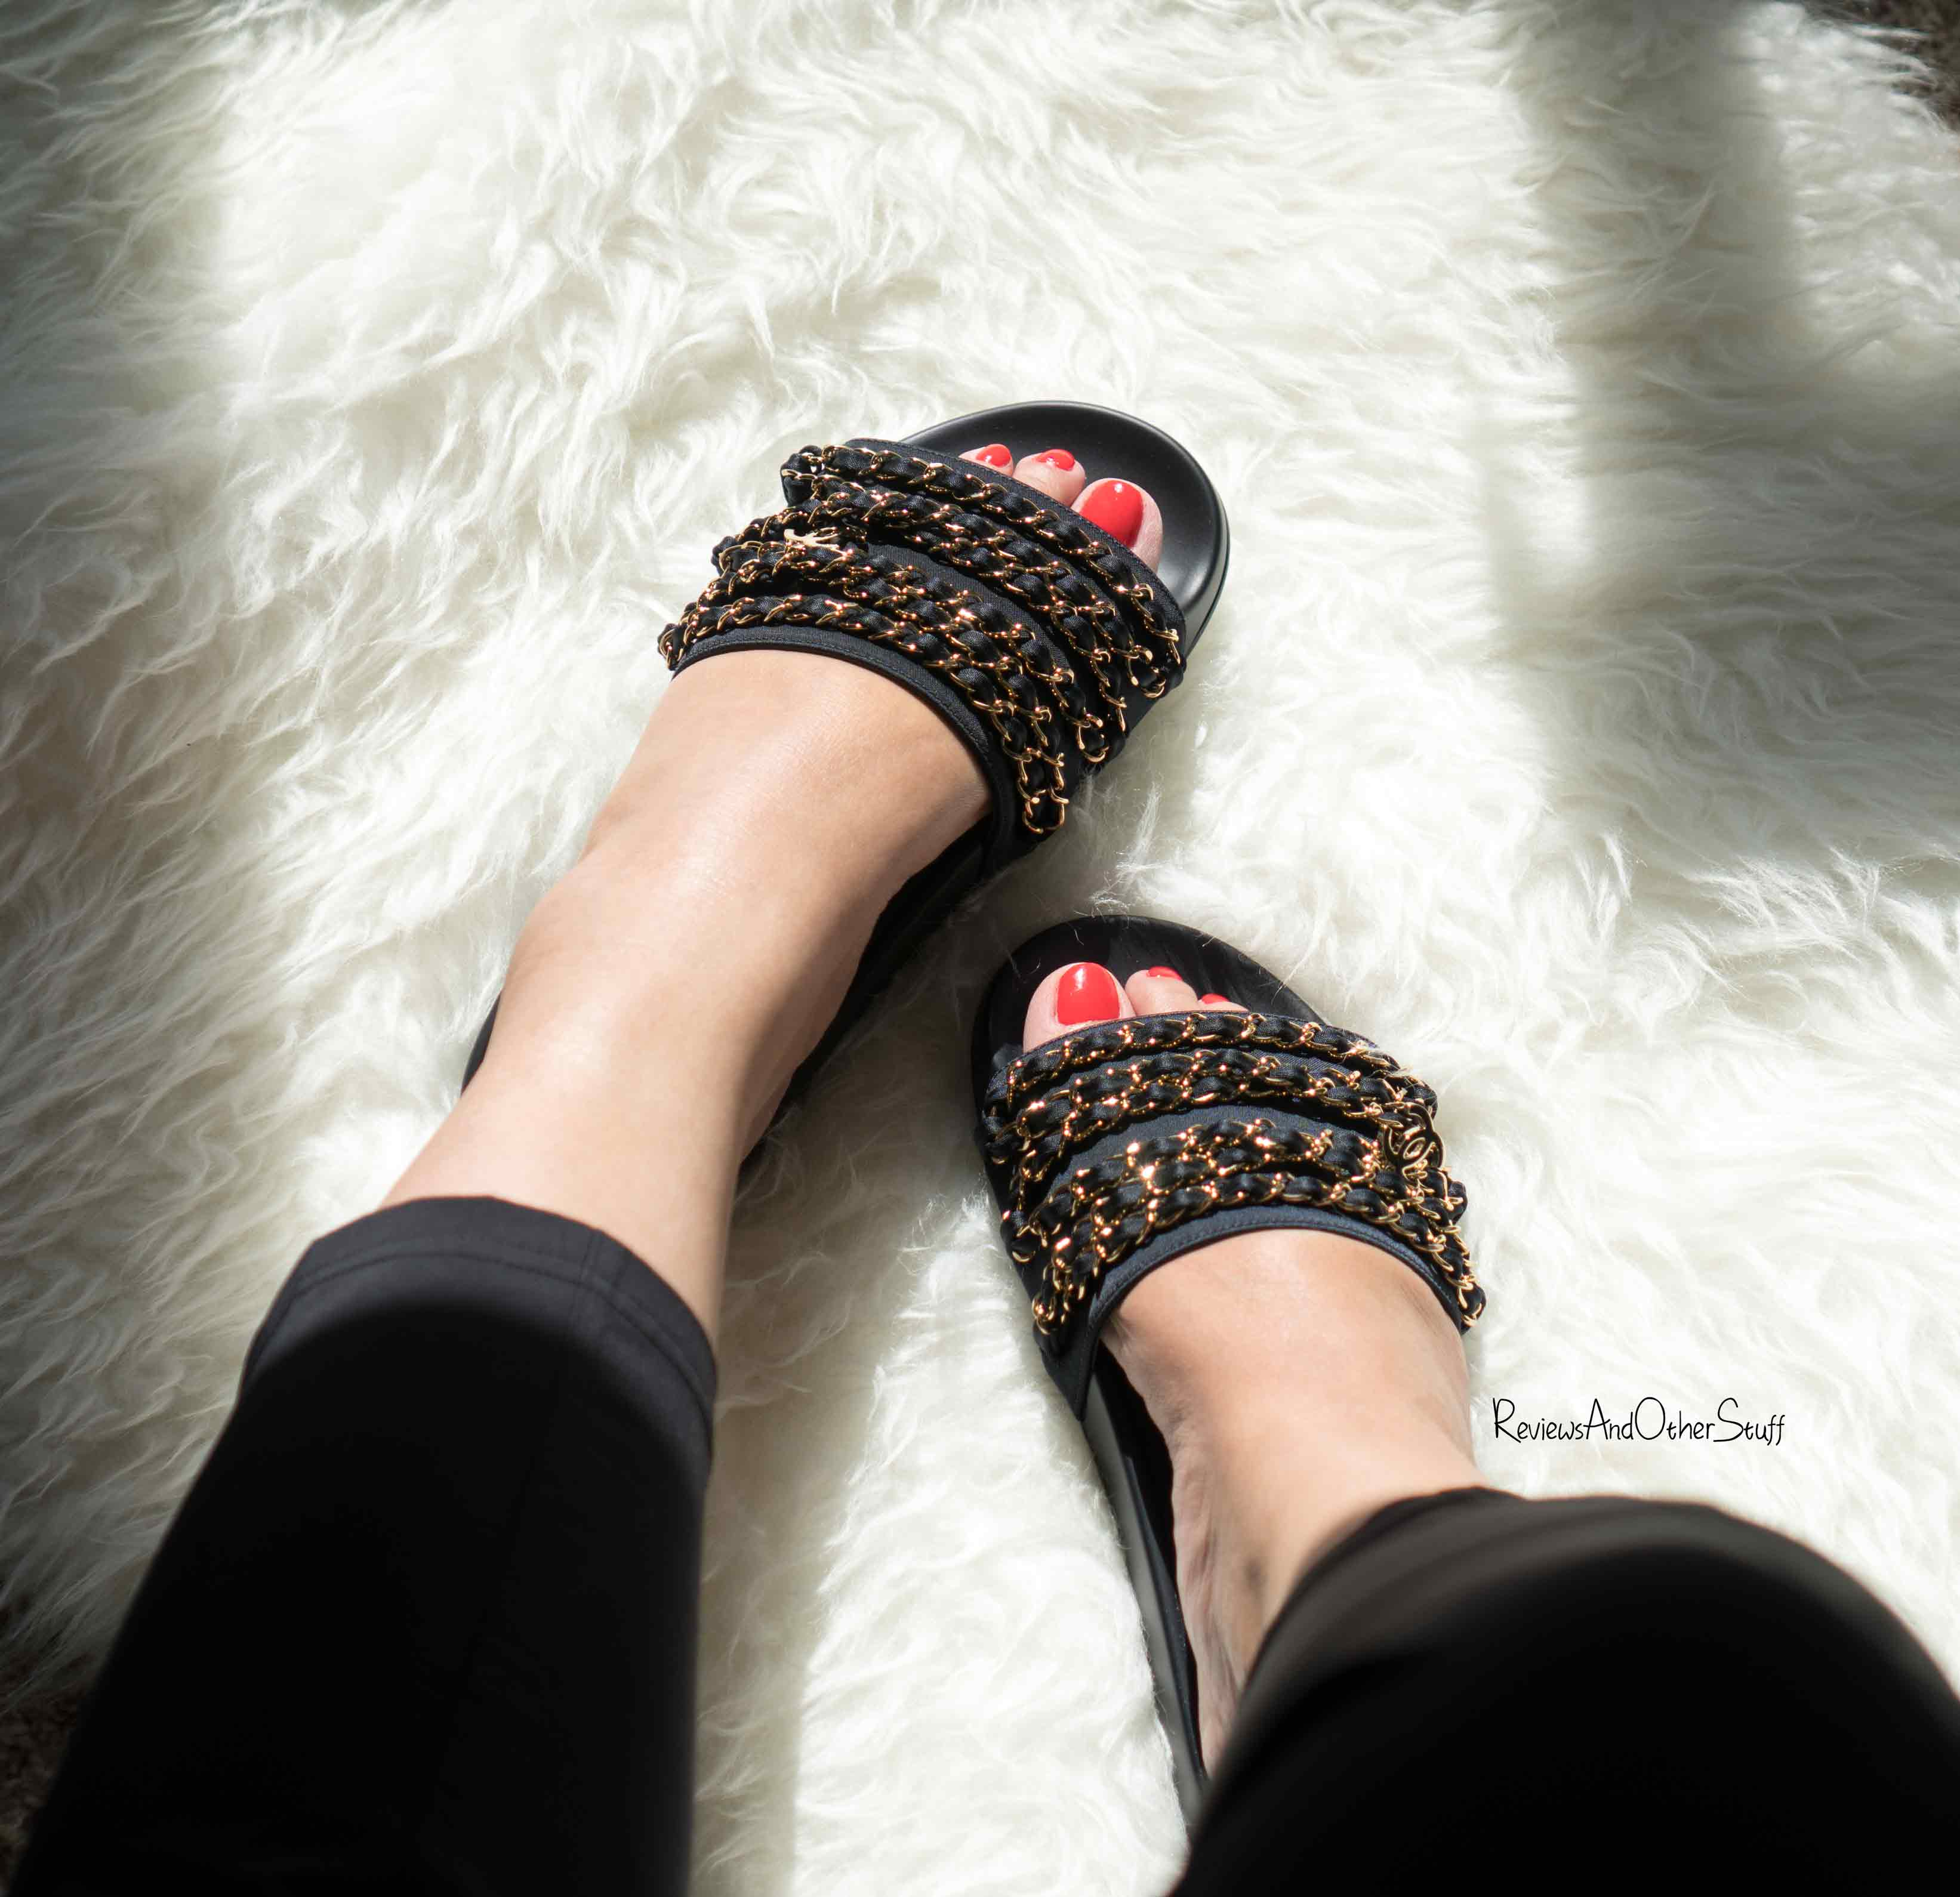 Chanel Mules Slides Review - Reviews